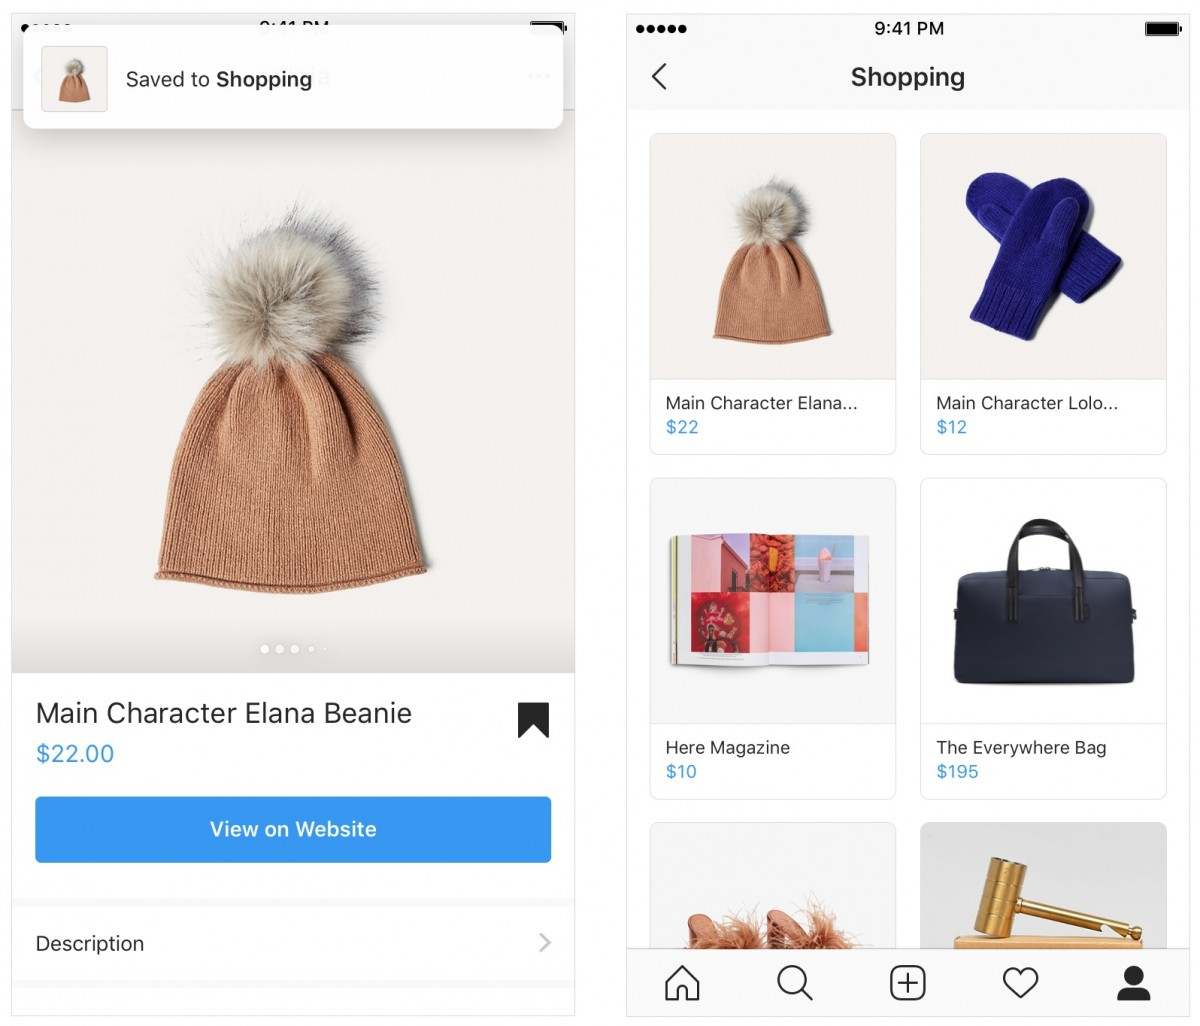 instagram-shopping-features-expanded-1